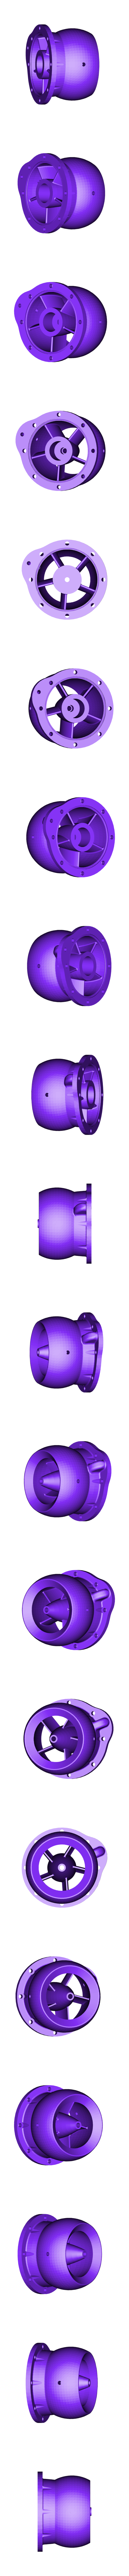 diffusor with integrated cooling new nozzle.STL Download free STL file upgrade parts for Water Jet propulsion unit • 3D printer design, toto44